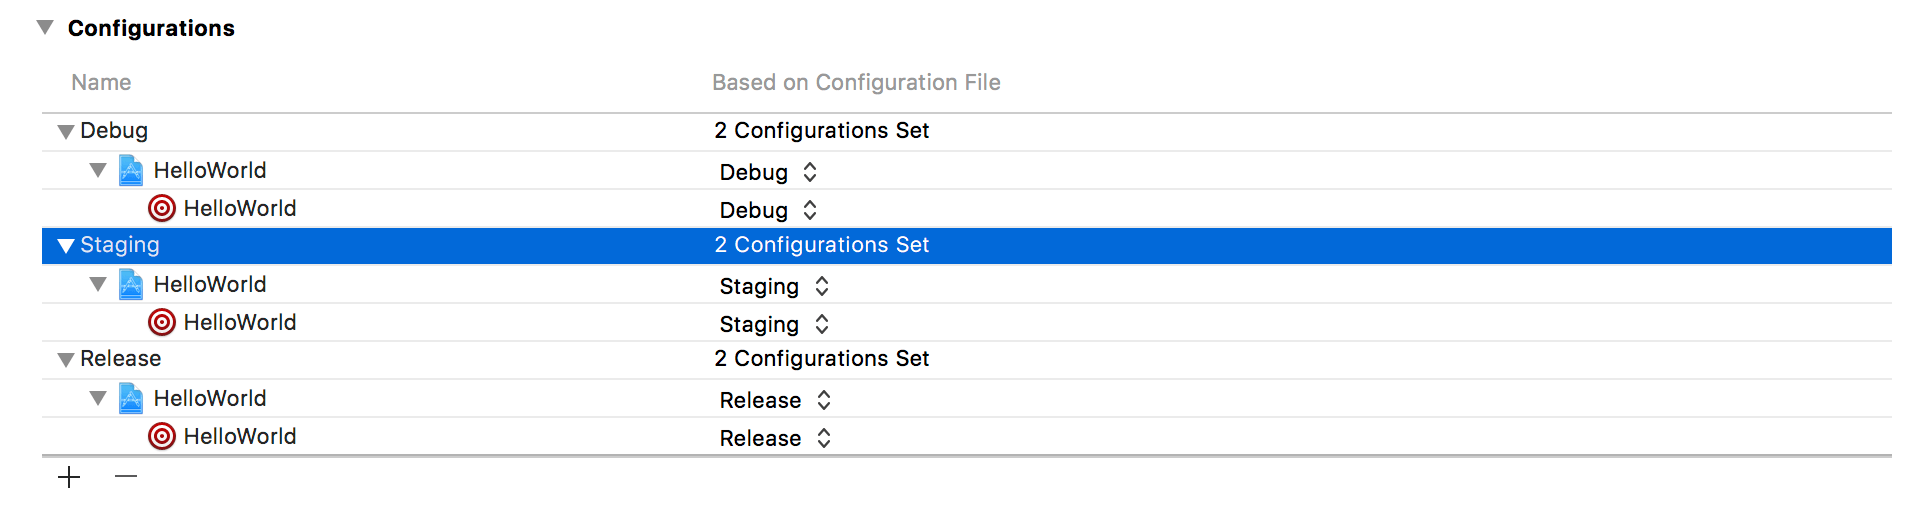 staging-configuration-file-2